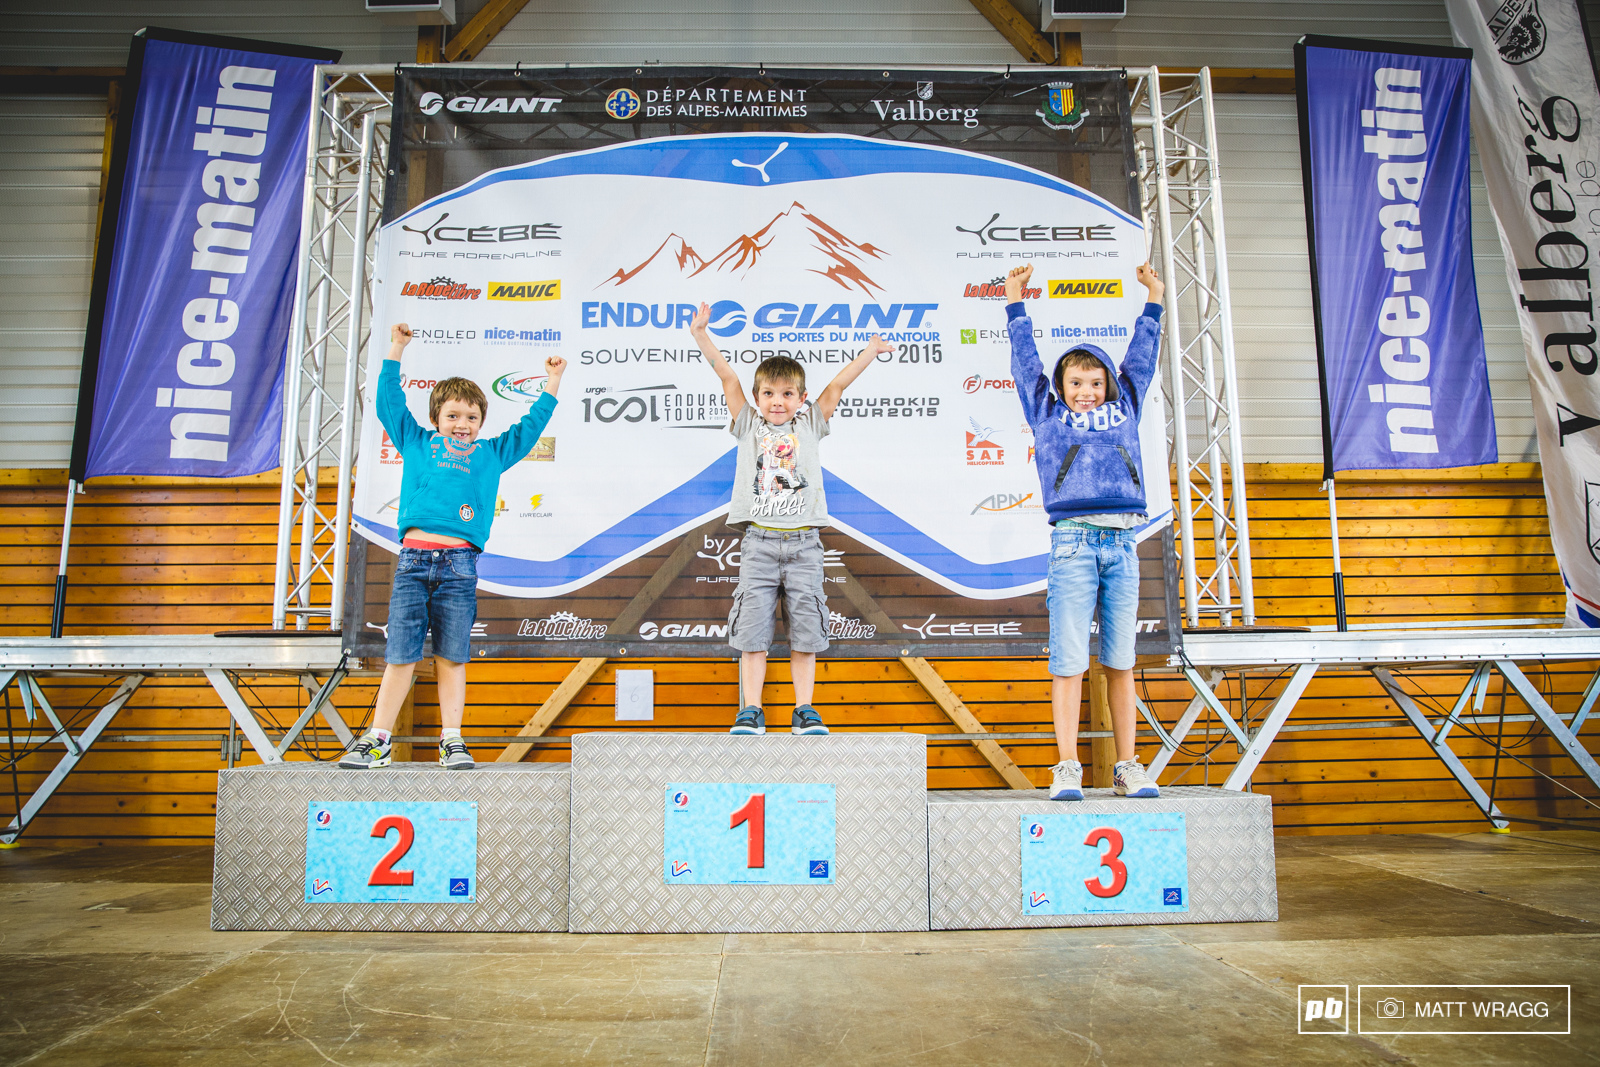 Given the track record of this part of the world the chances of one of these kids standing on a more serious podium in around a decade is very high.